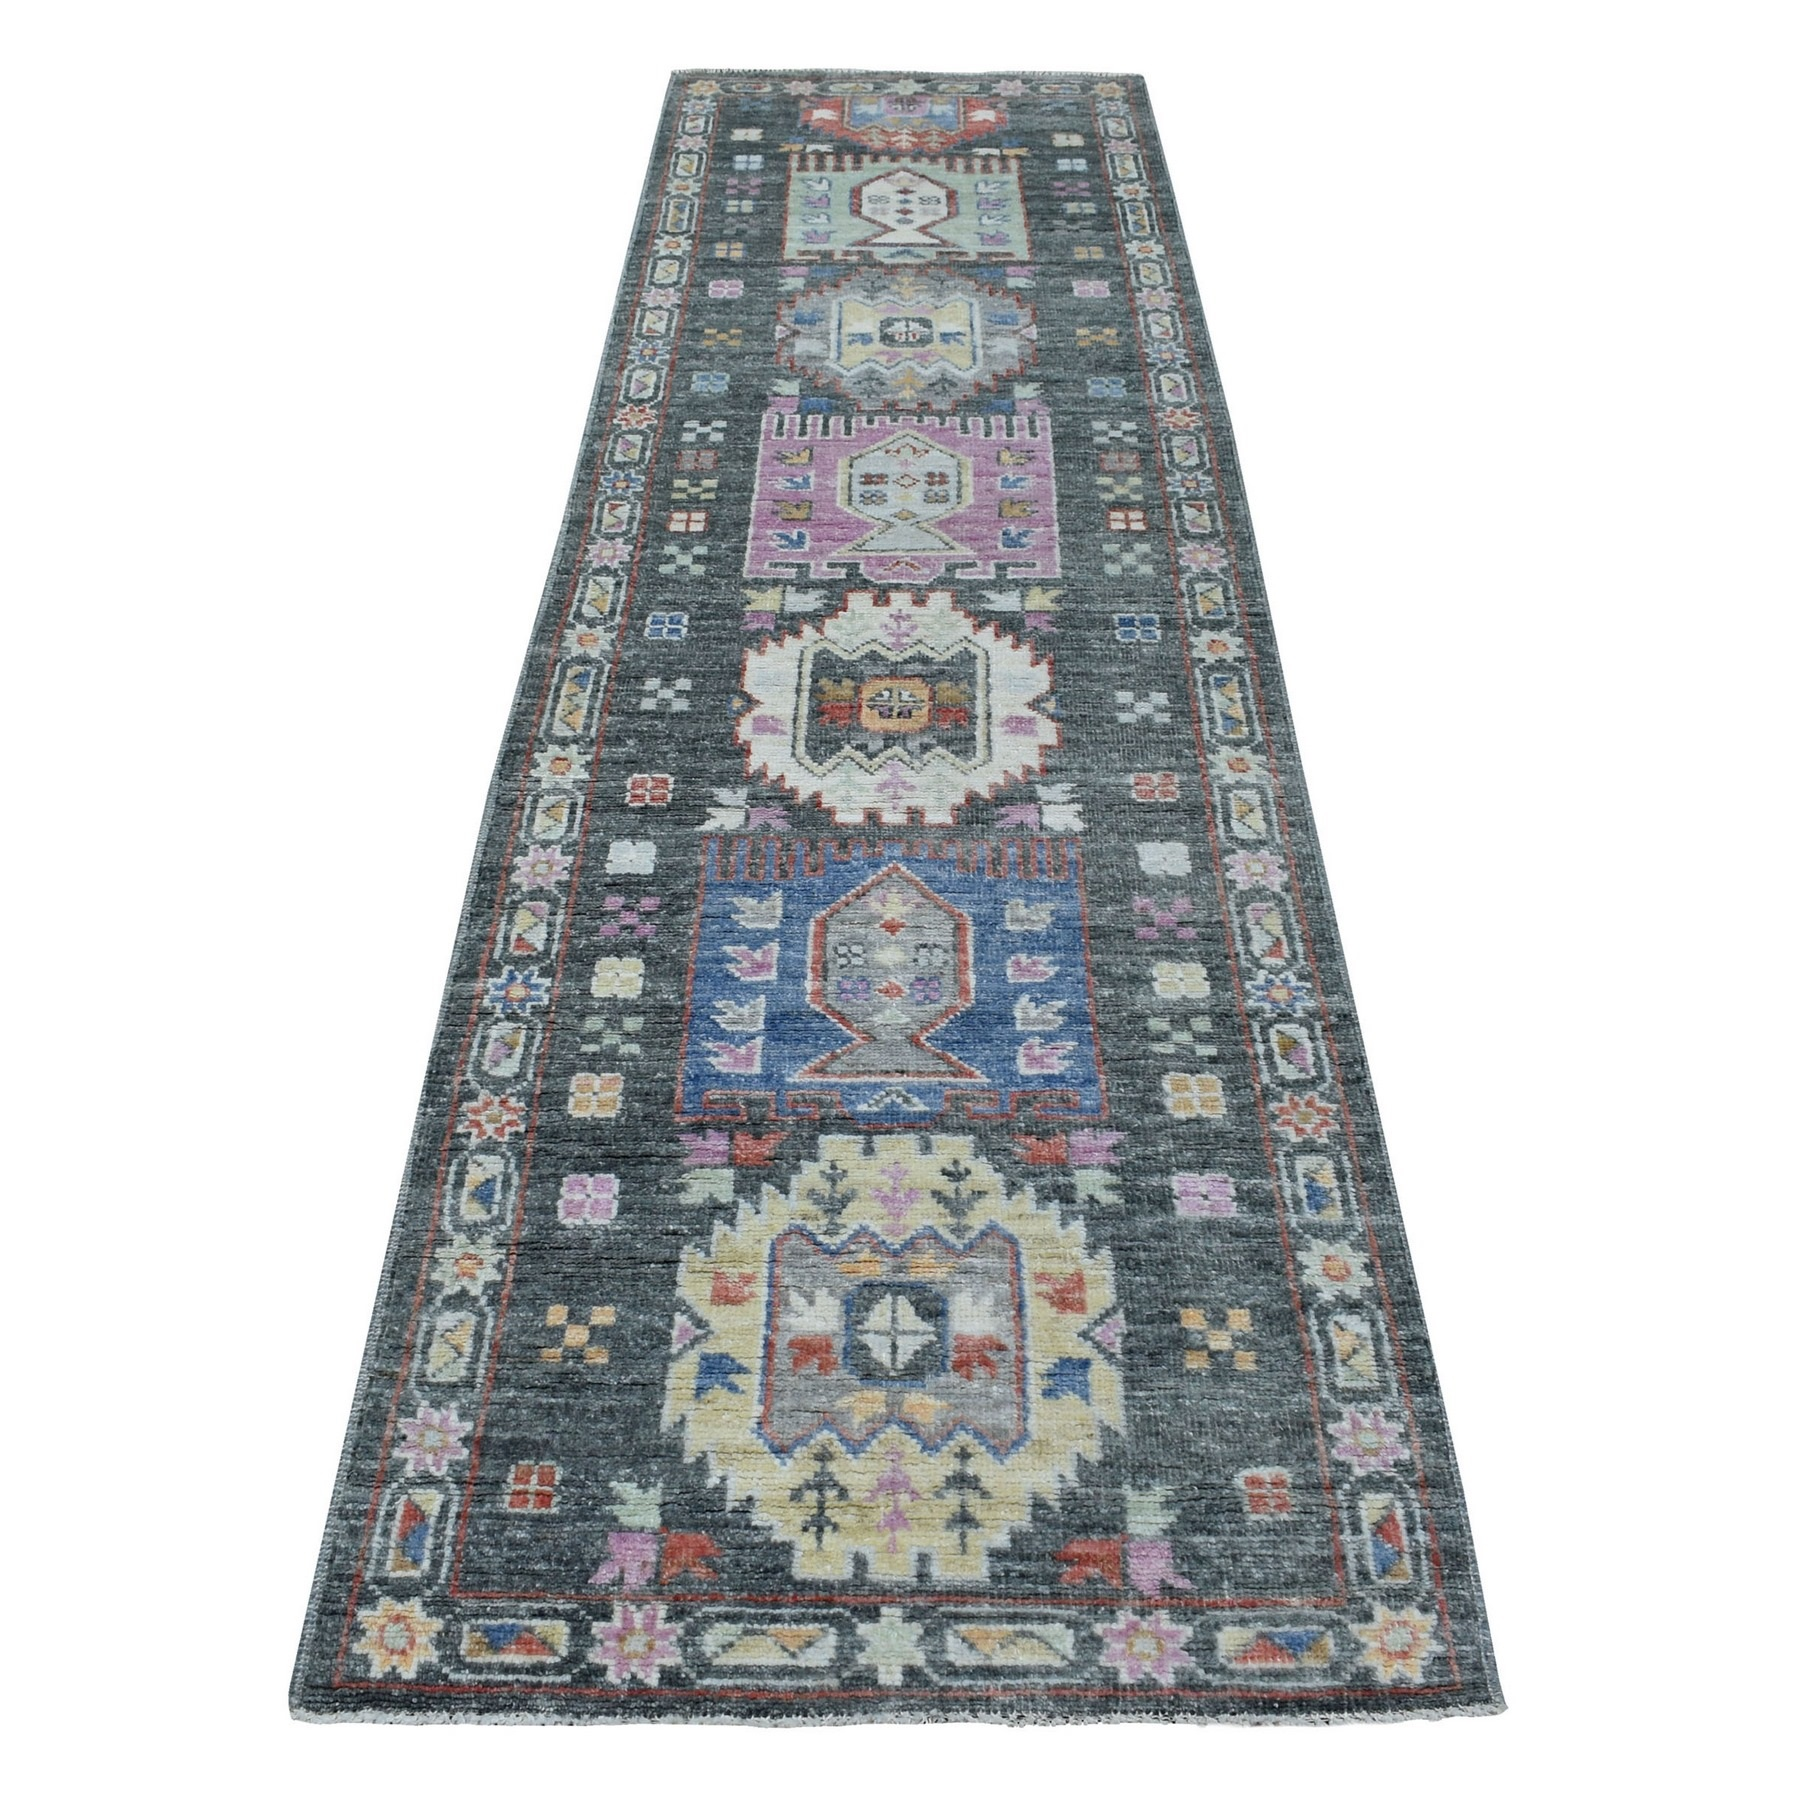 "2'10""x9'10"" Hand Woven Dark Gray With Geometric Village Anatolian Design Angora Oushak Glimmery Wool Oriental Runner Rug"